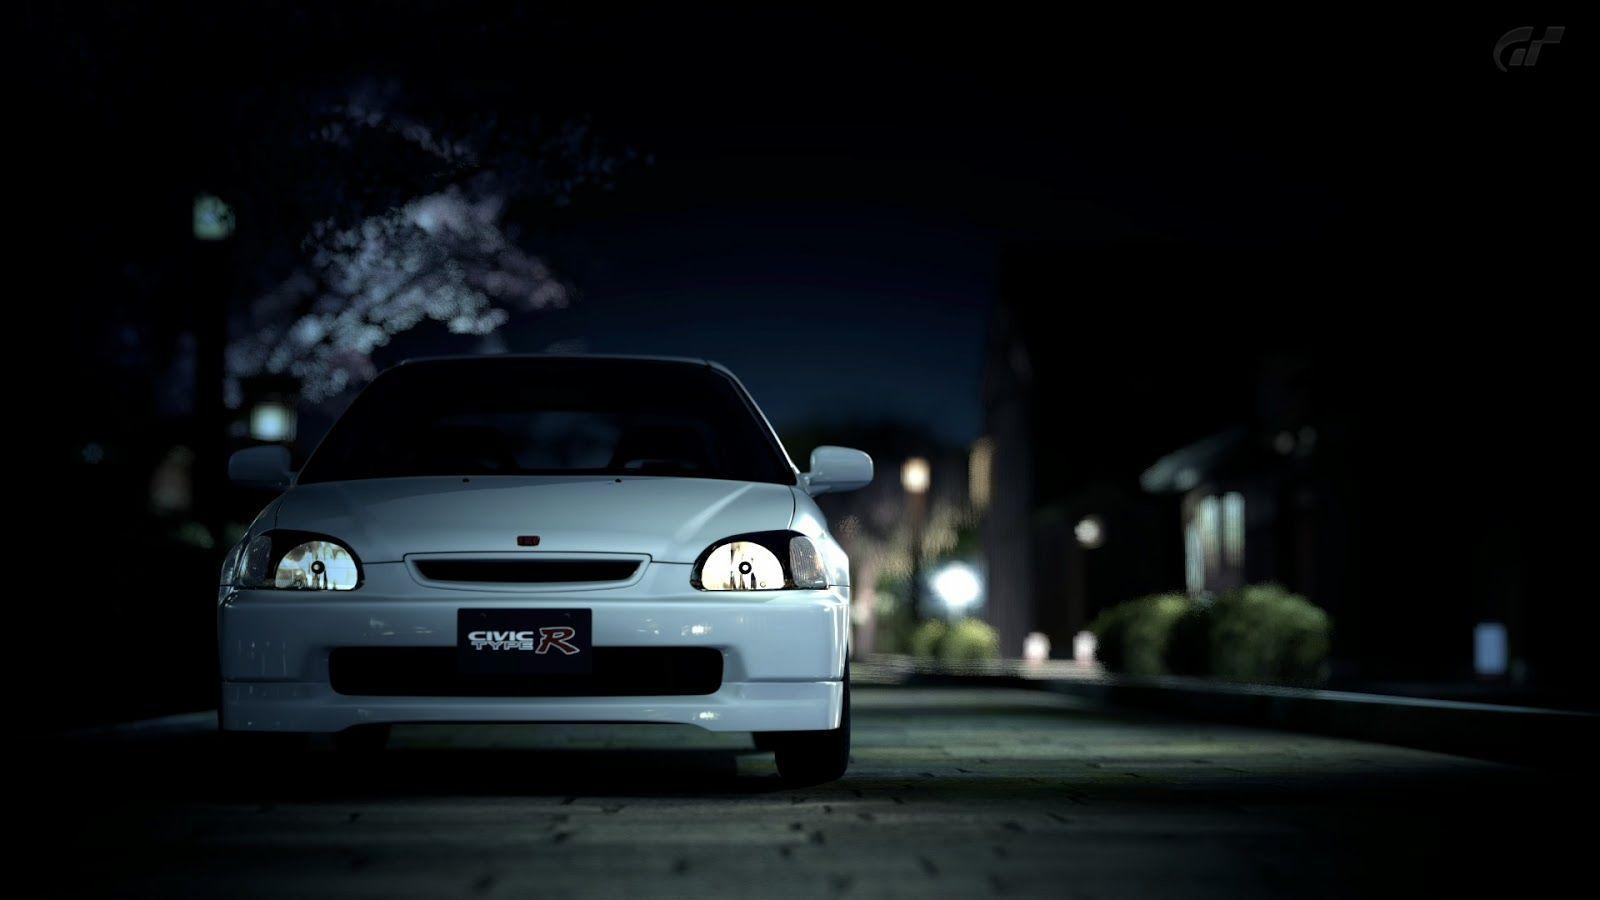 honda civic wallpapers image size